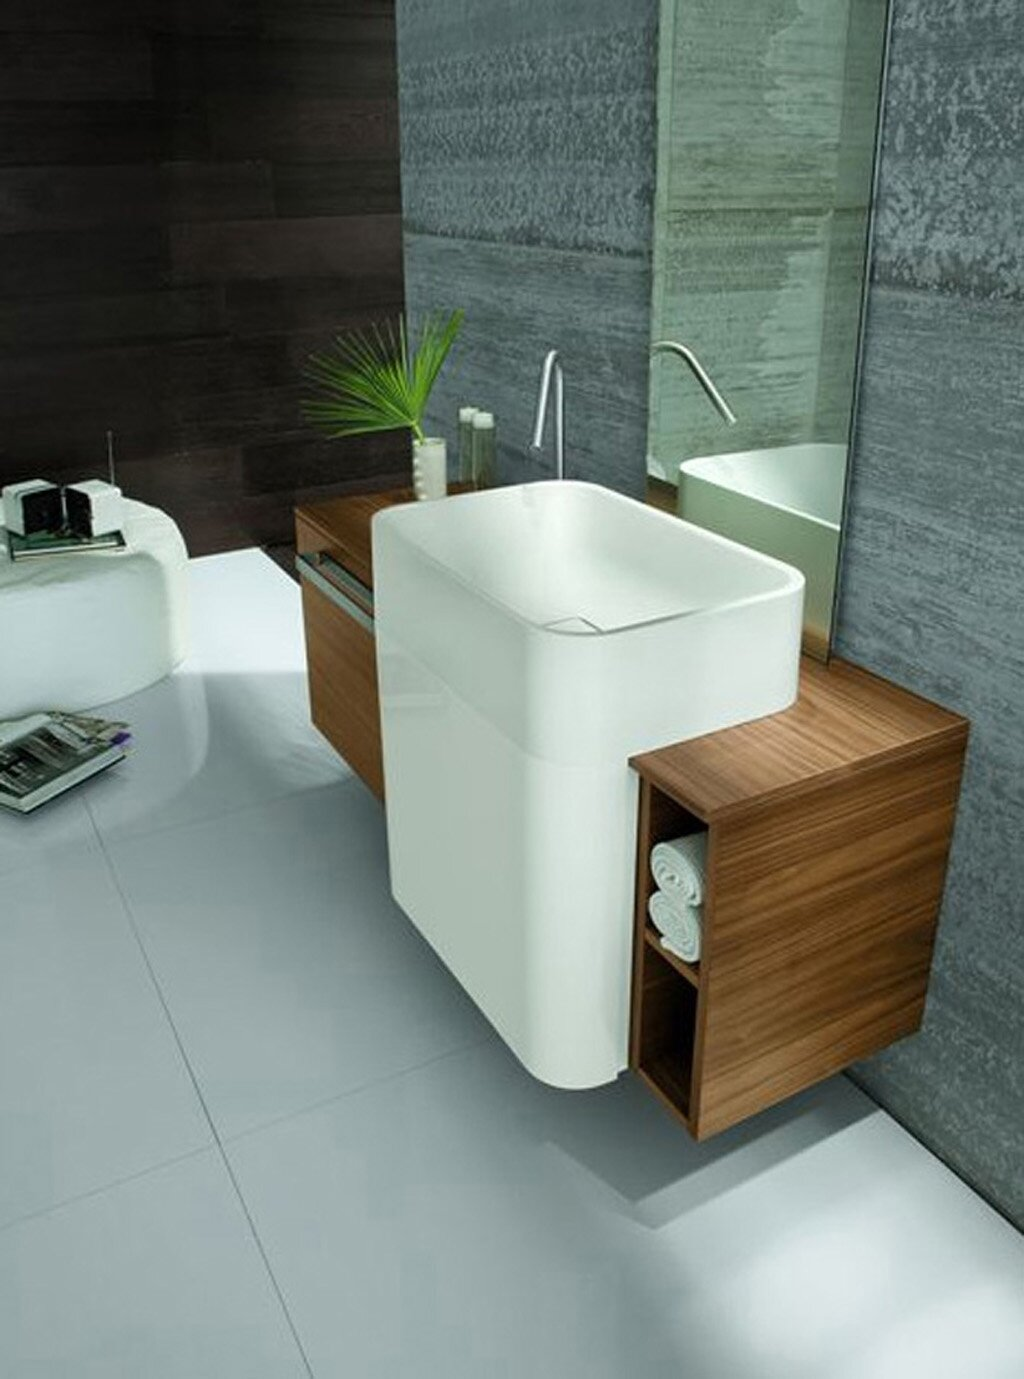 Top 15 bathroom sink designs and models mostbeautifulthings - Small space bathroom sinks style ...